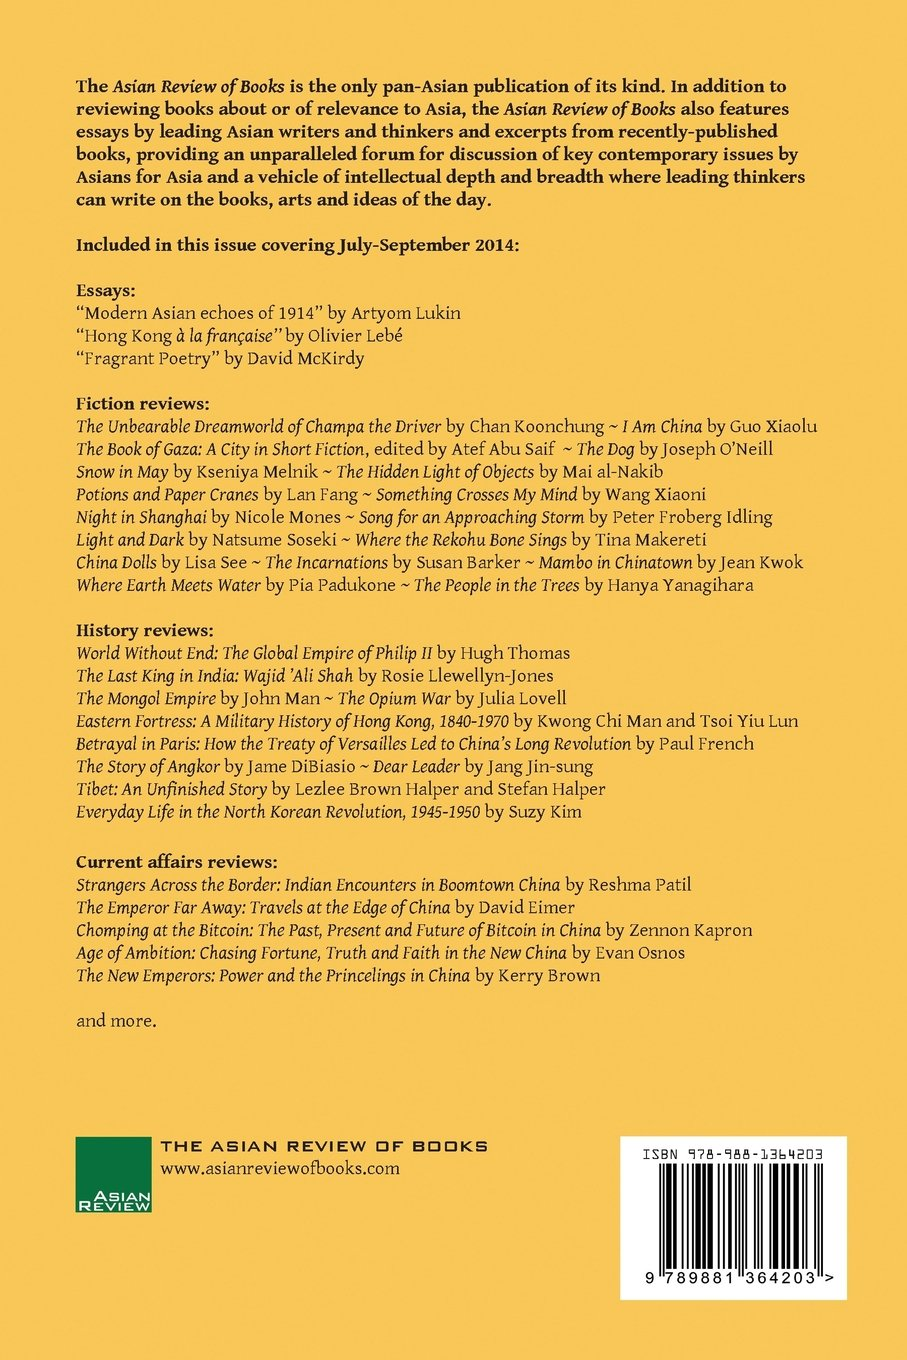 Amazon.com: Asian Review of Books, Volume 1, Number 2: October 2014  (9789881364203): Peter Gordon: Books